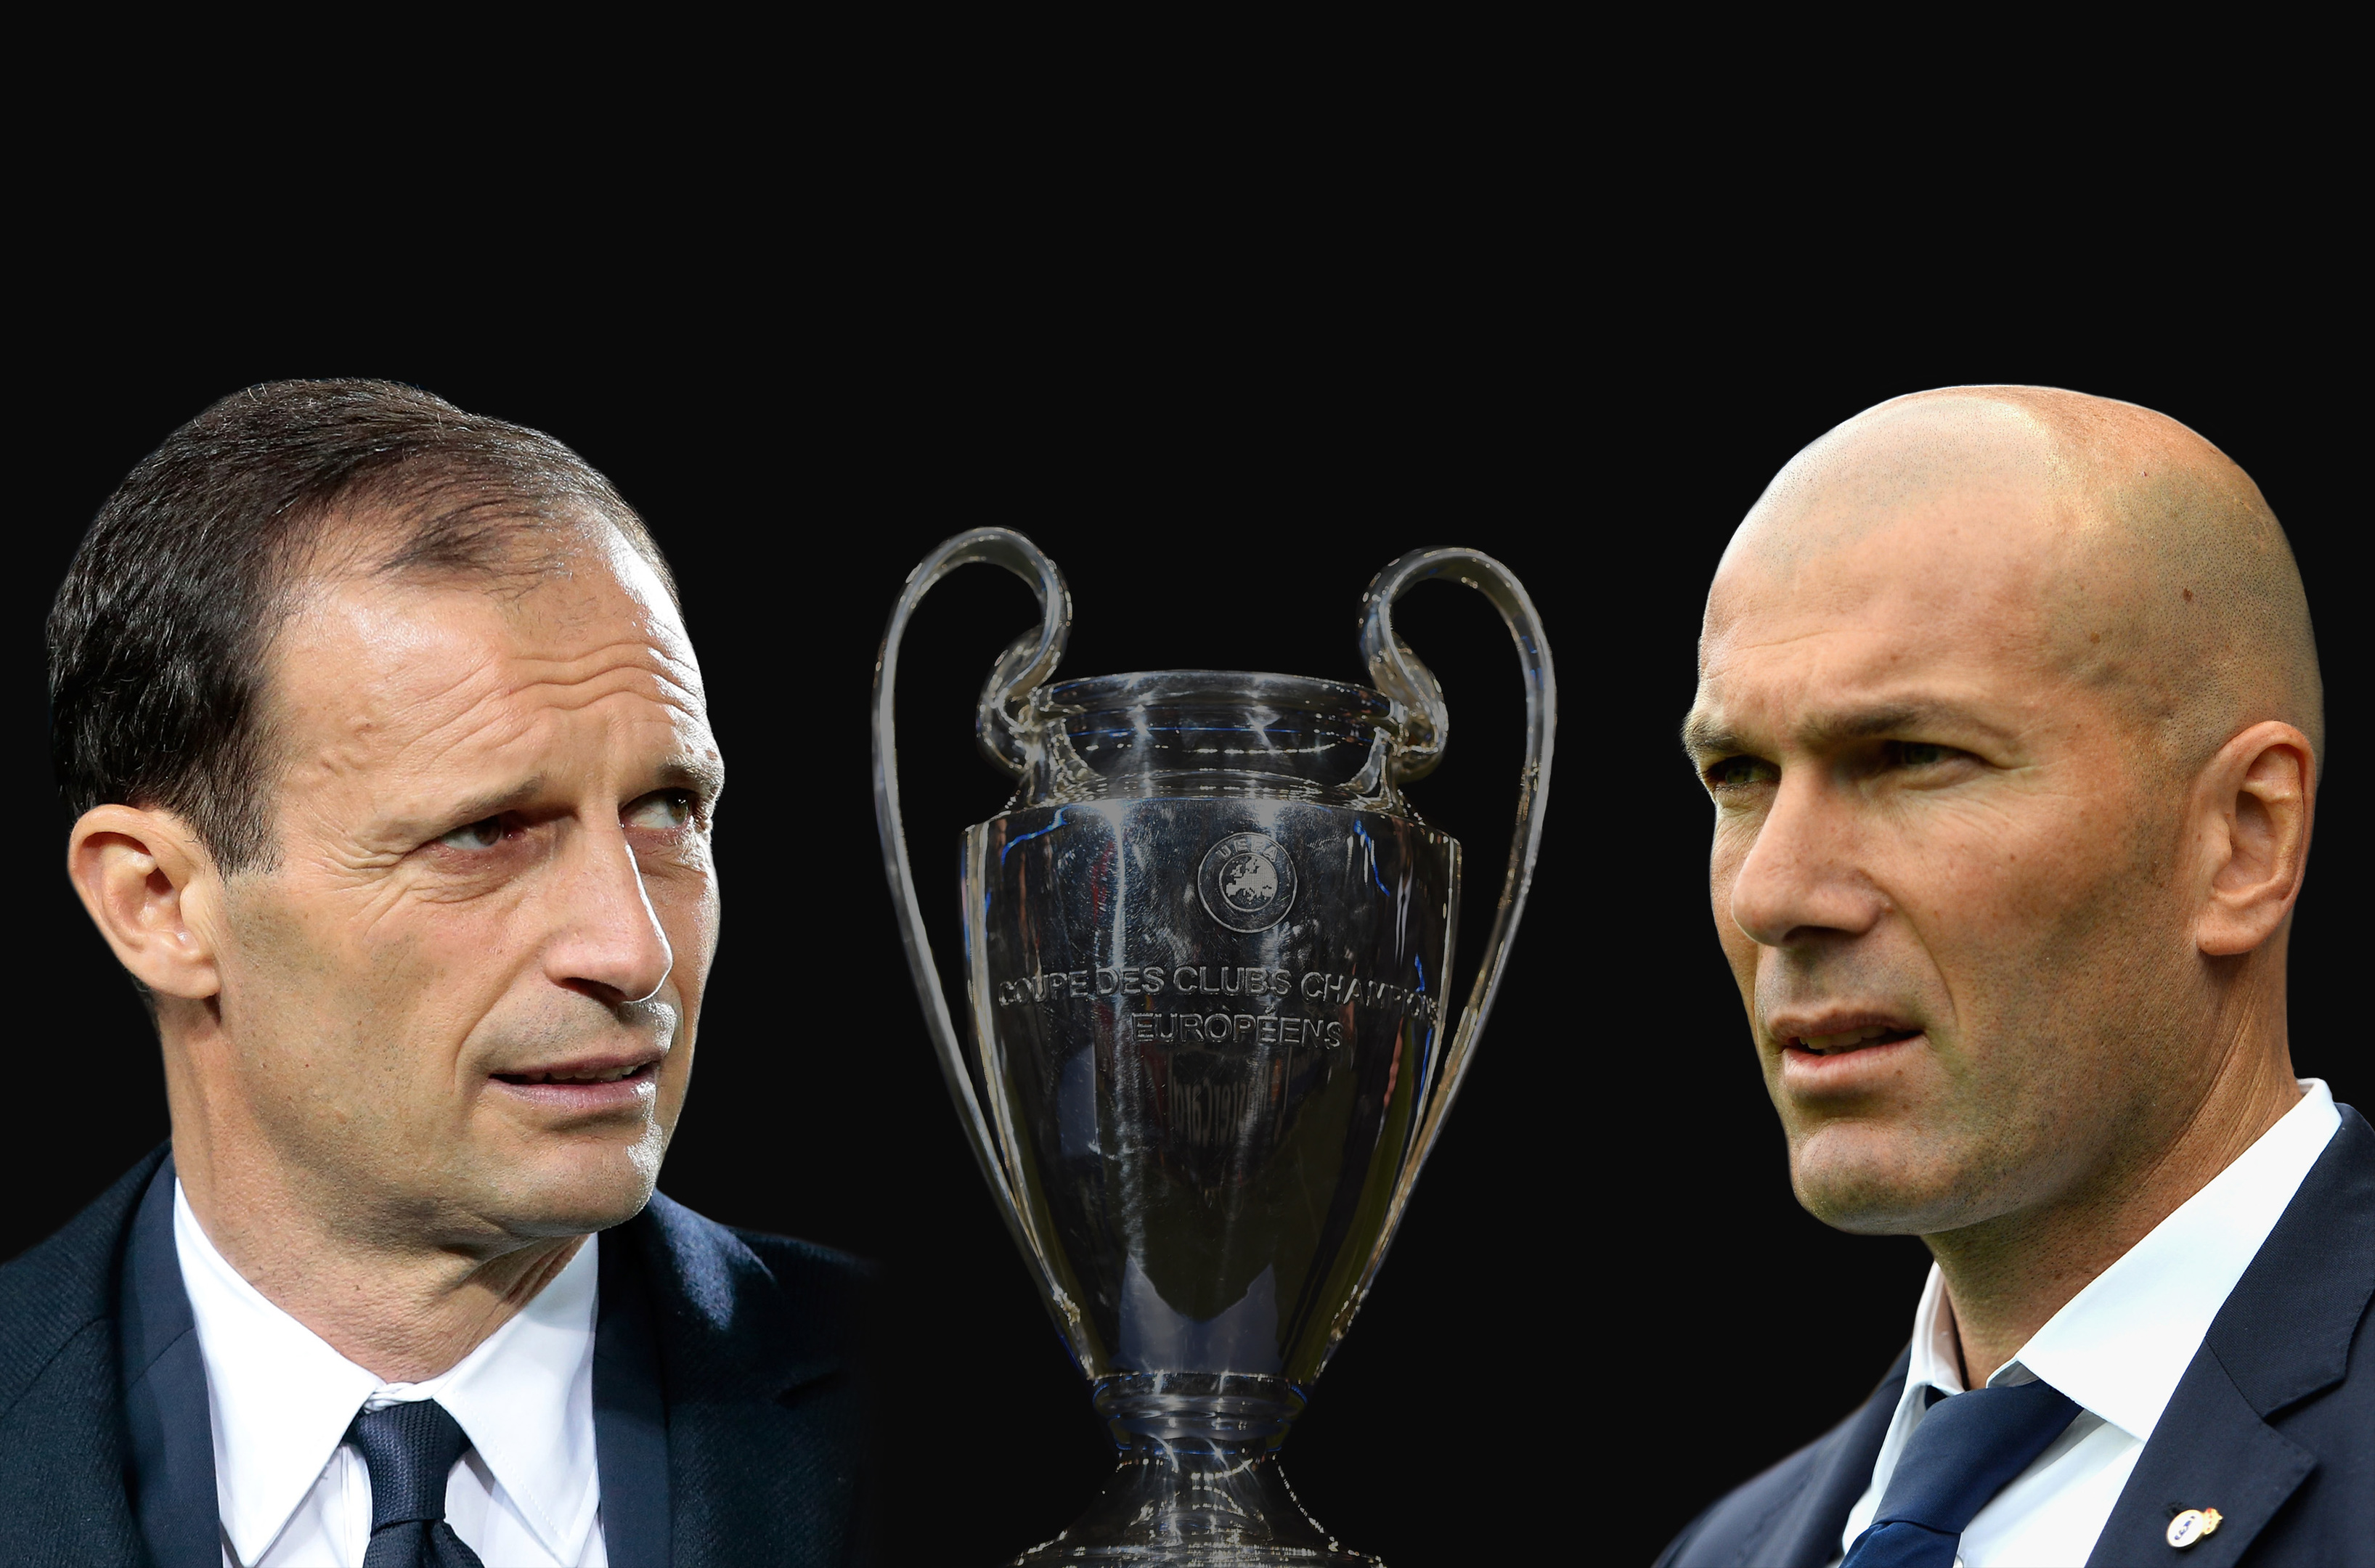 Juventus FC head coach Massimiliano Allegri and Zinedine Zidane, Head Coach of Real Madrid.(Emilio Andreoli & Aitor Alcalde/Getty Images)